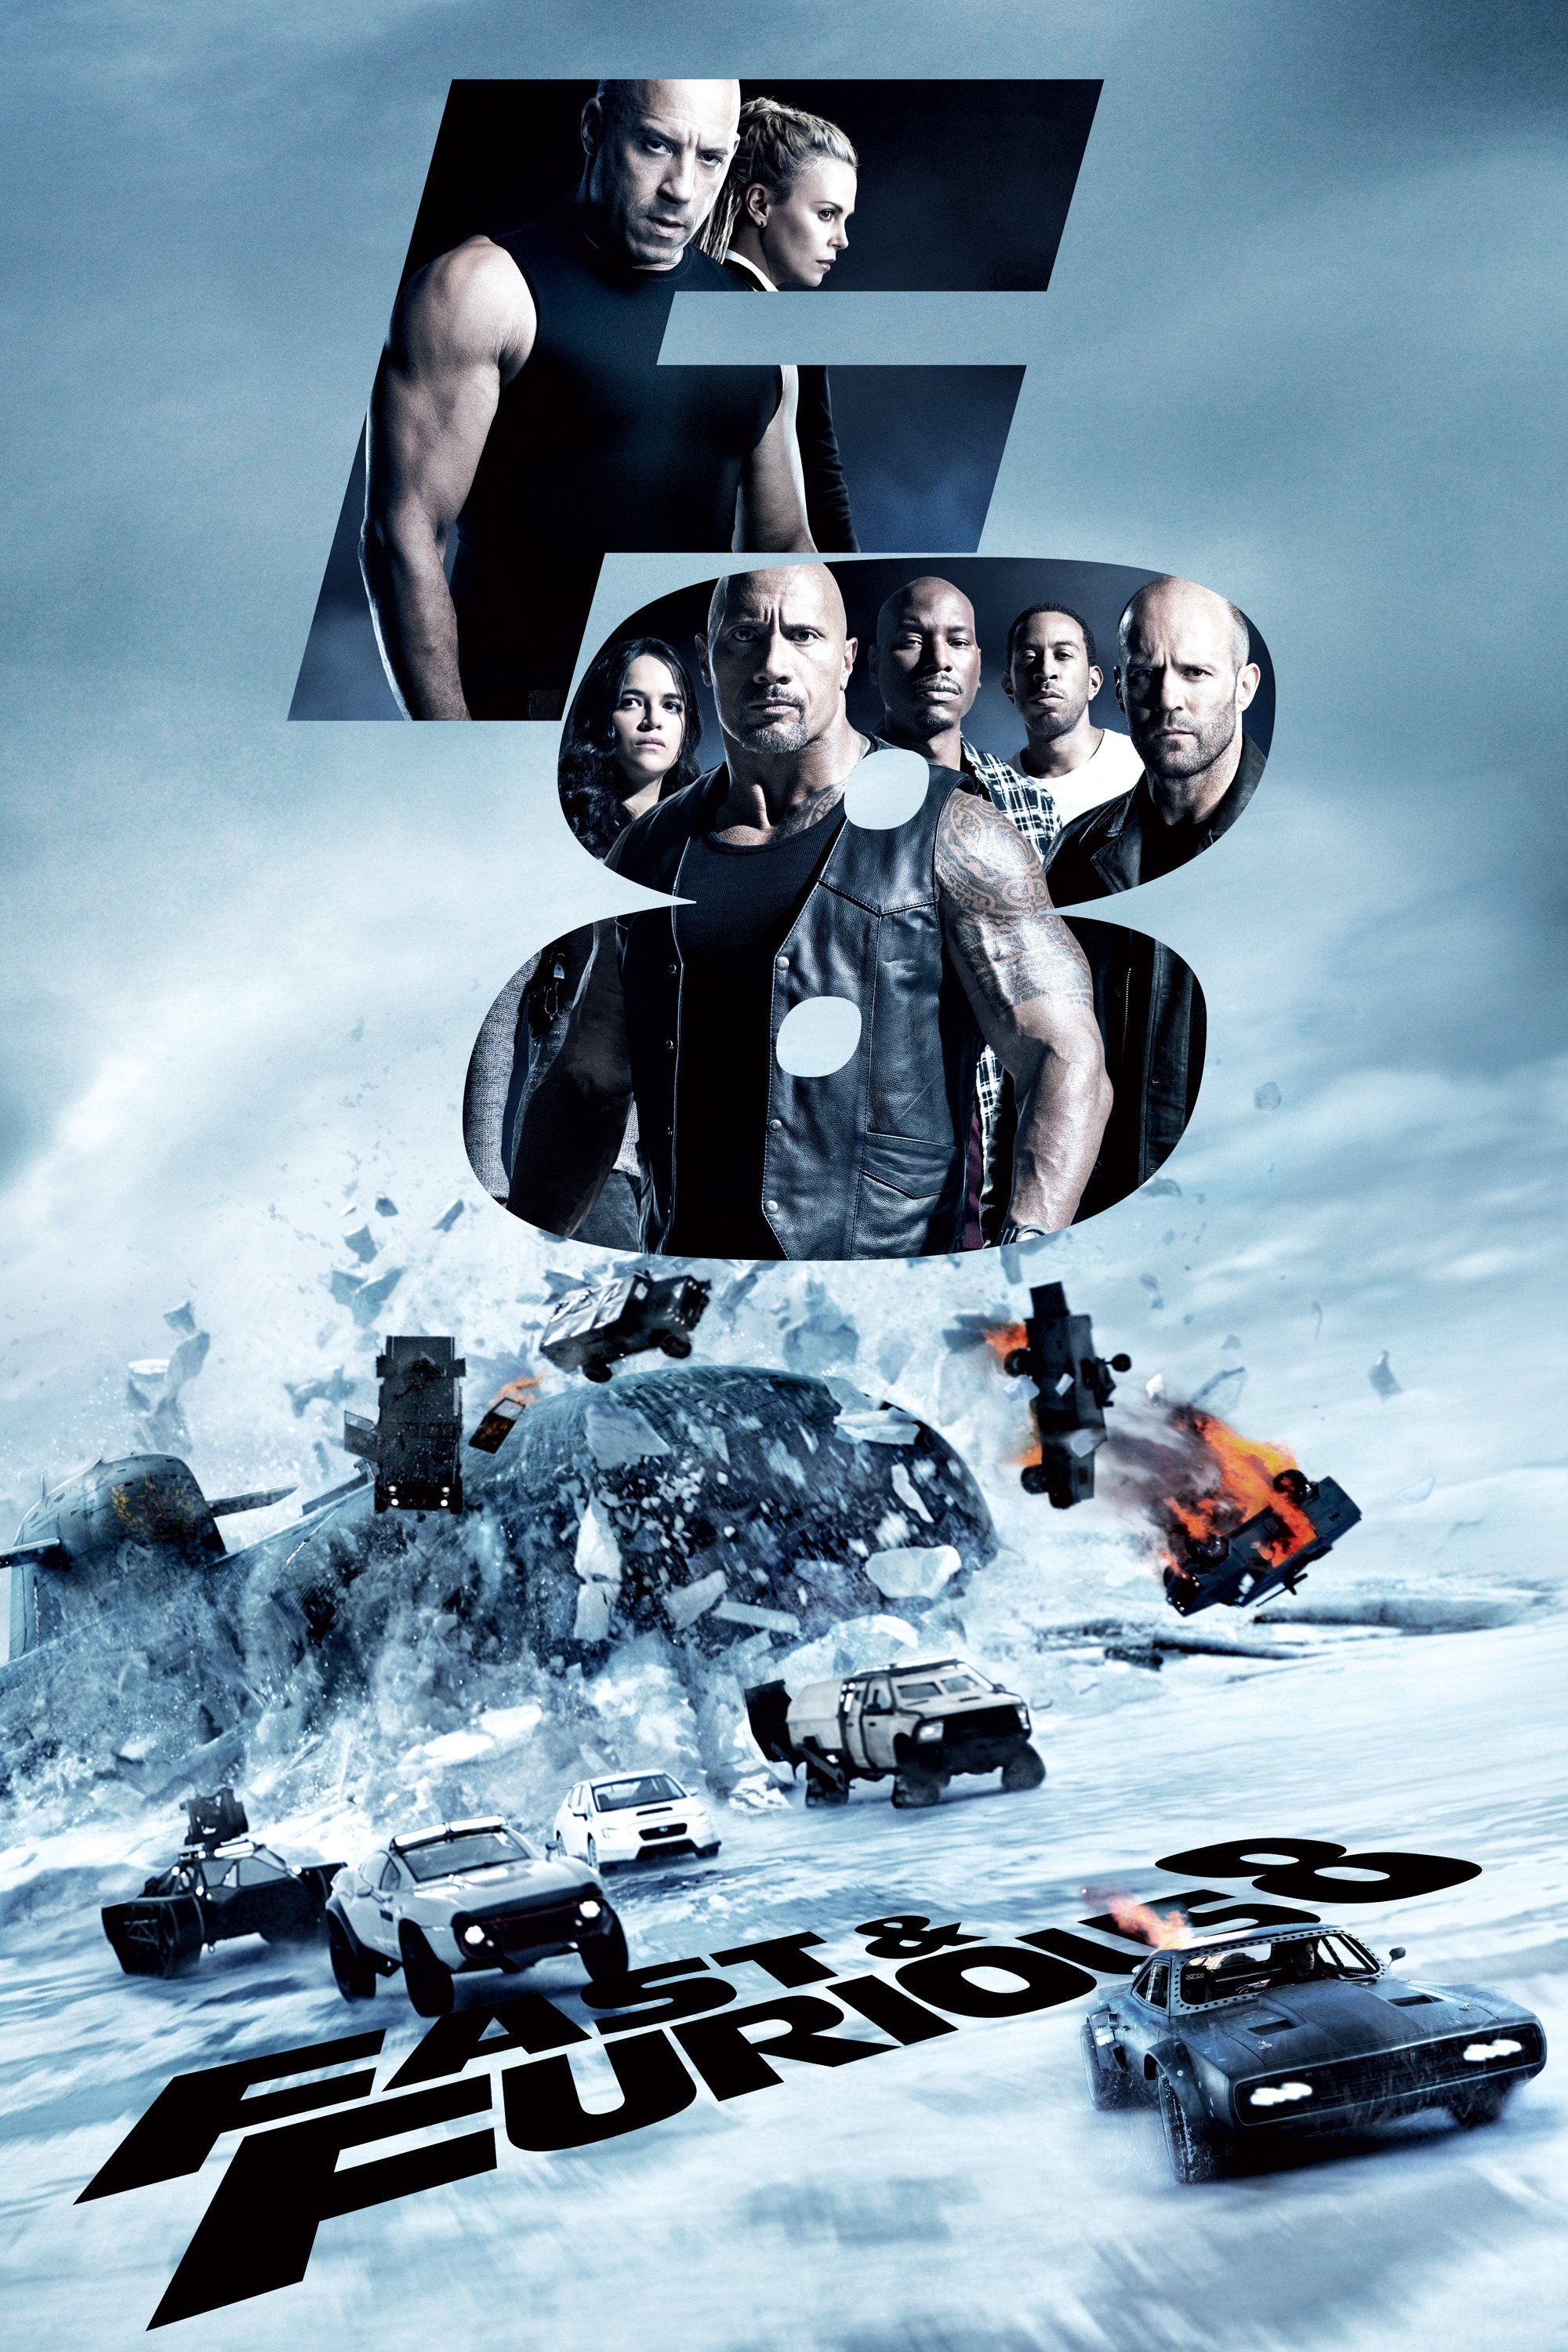 2017 06 29 With Images Fate Of The Furious Full Movies